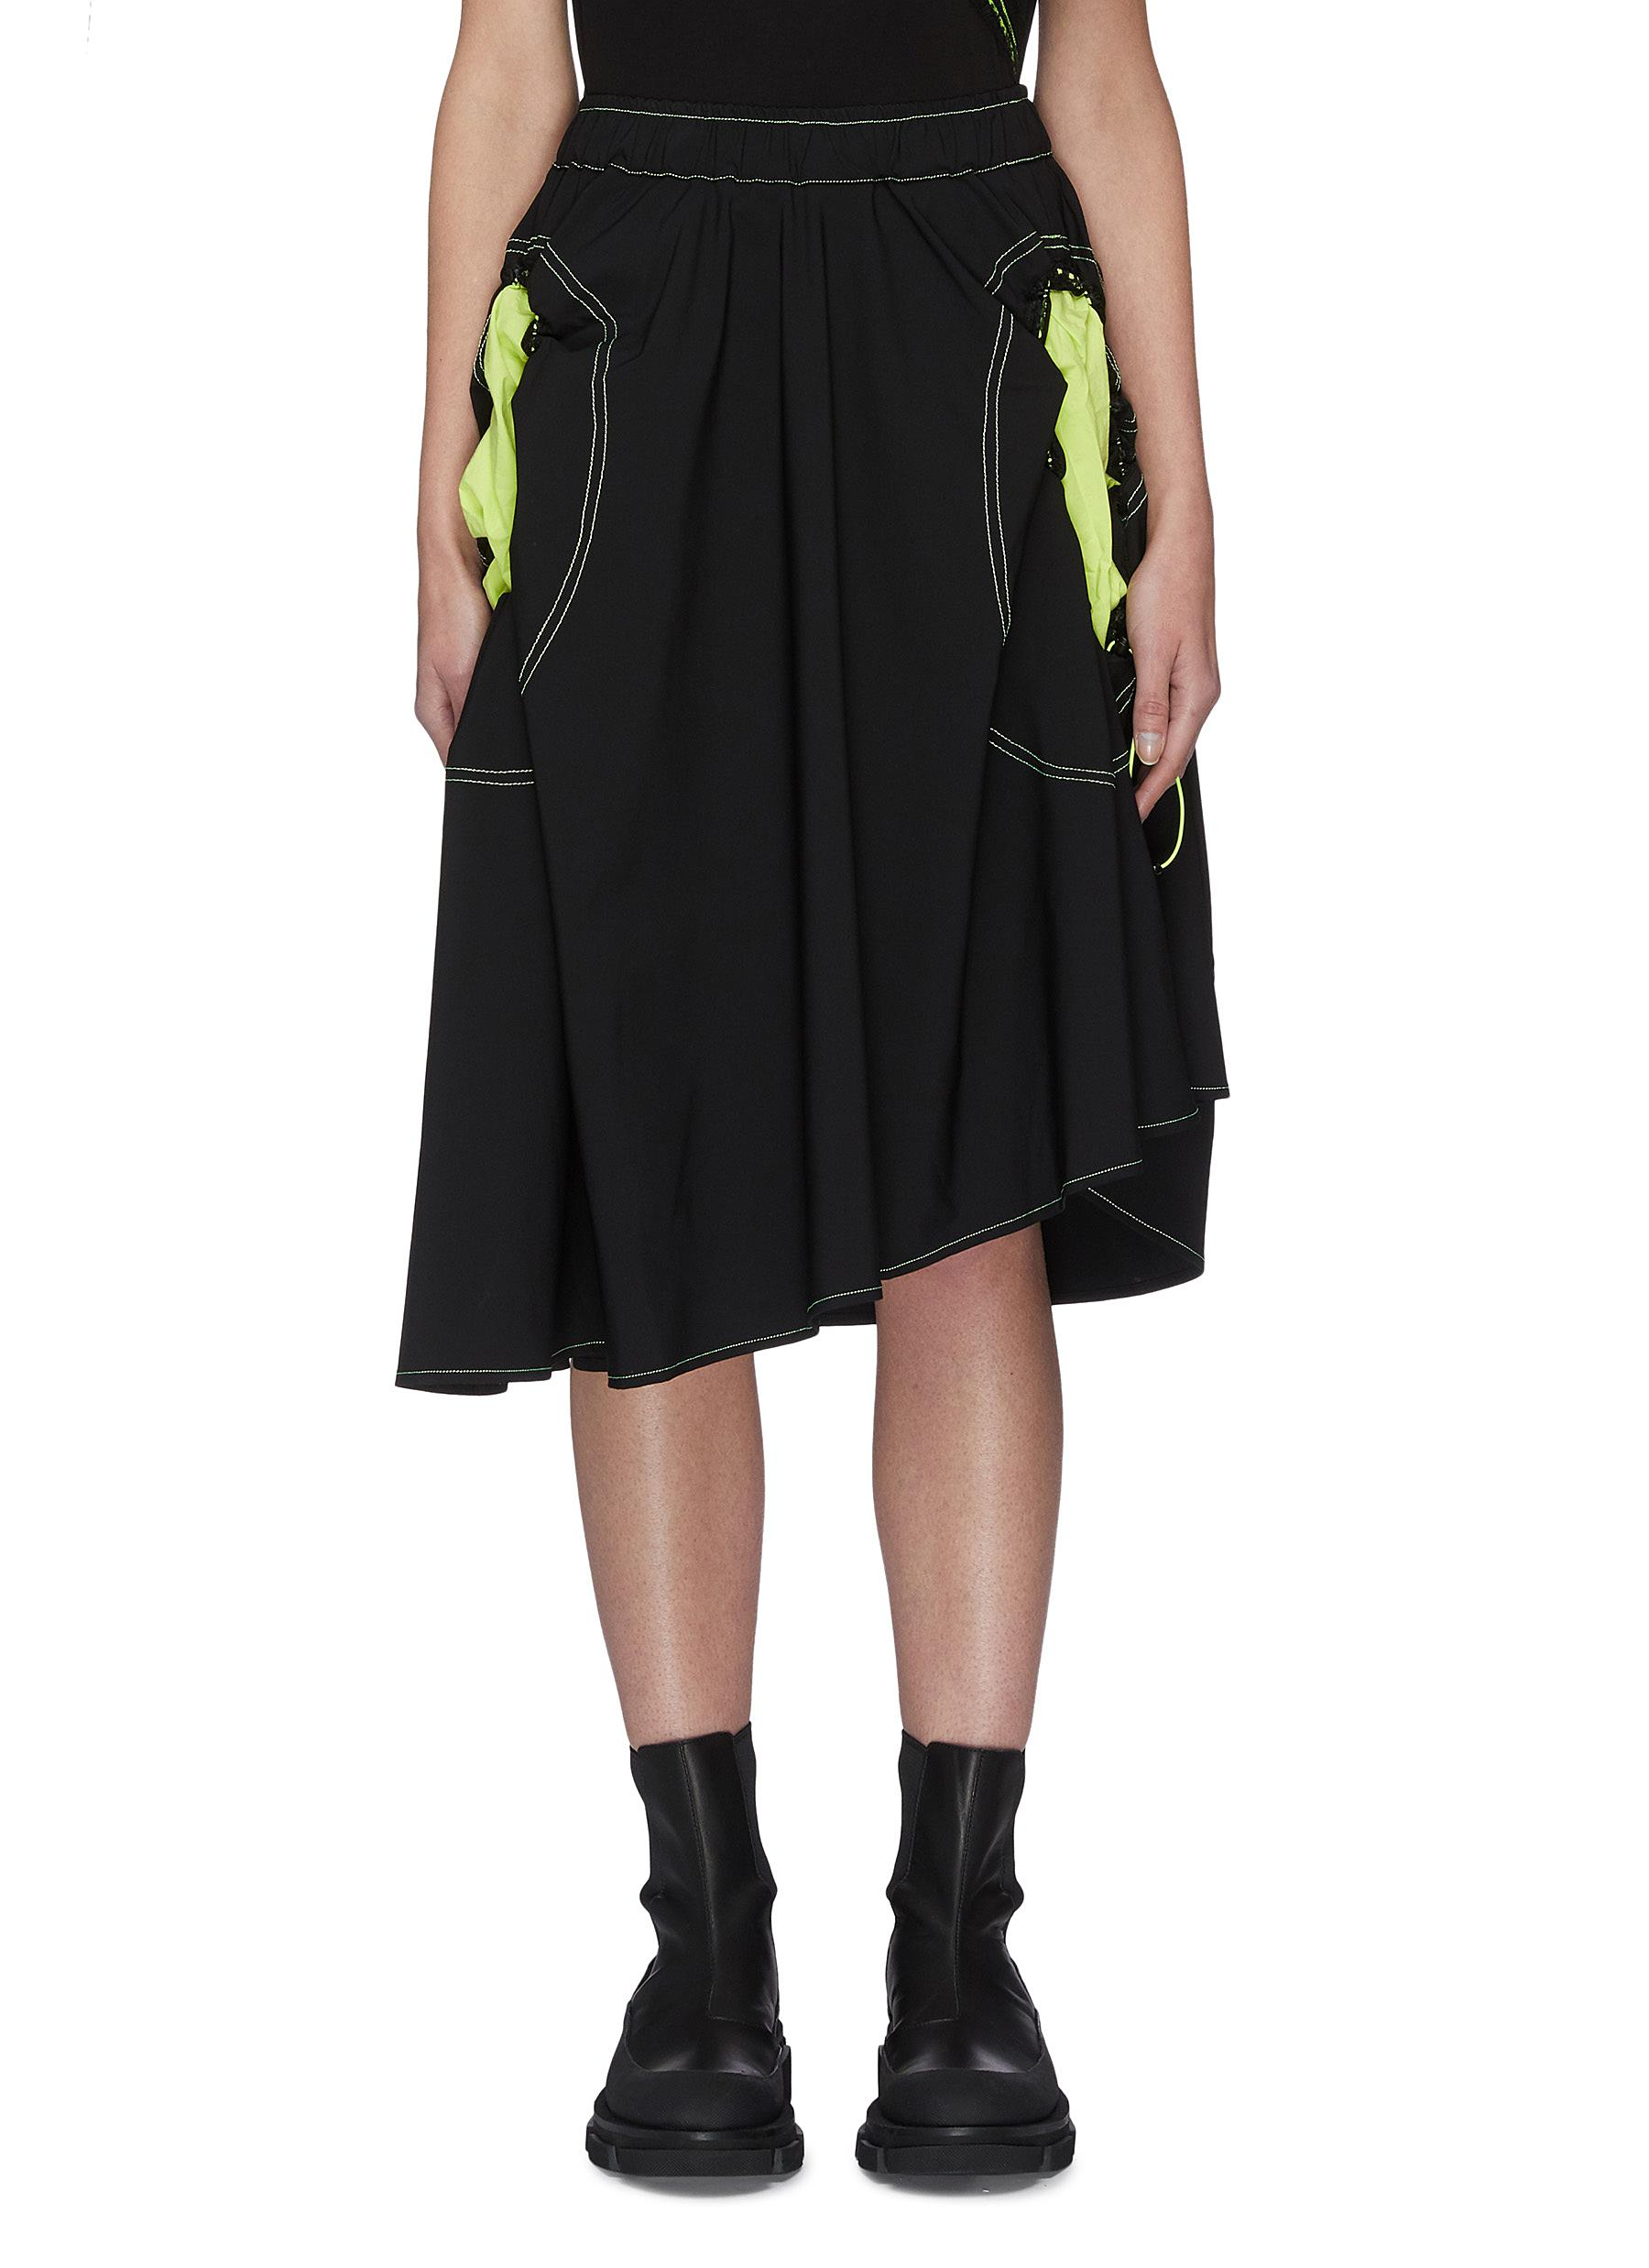 Buy Angel Chen Skirts Neon Cut-out Pockets Asymmetric Skirt